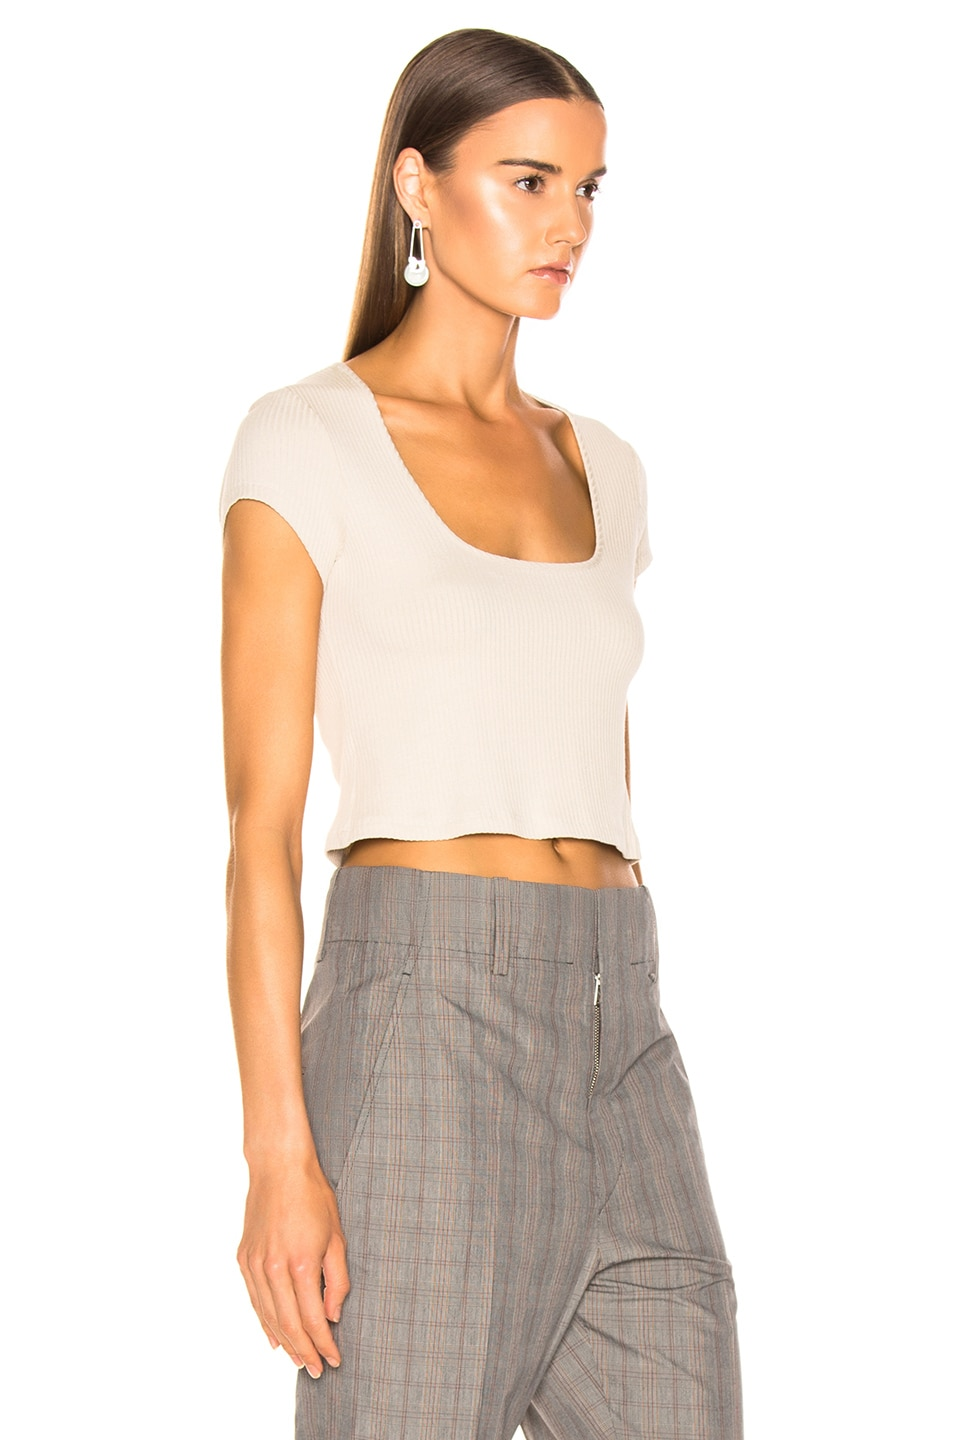 Image 2 of The Range Alloy Rib Cropped Tee in Limestone